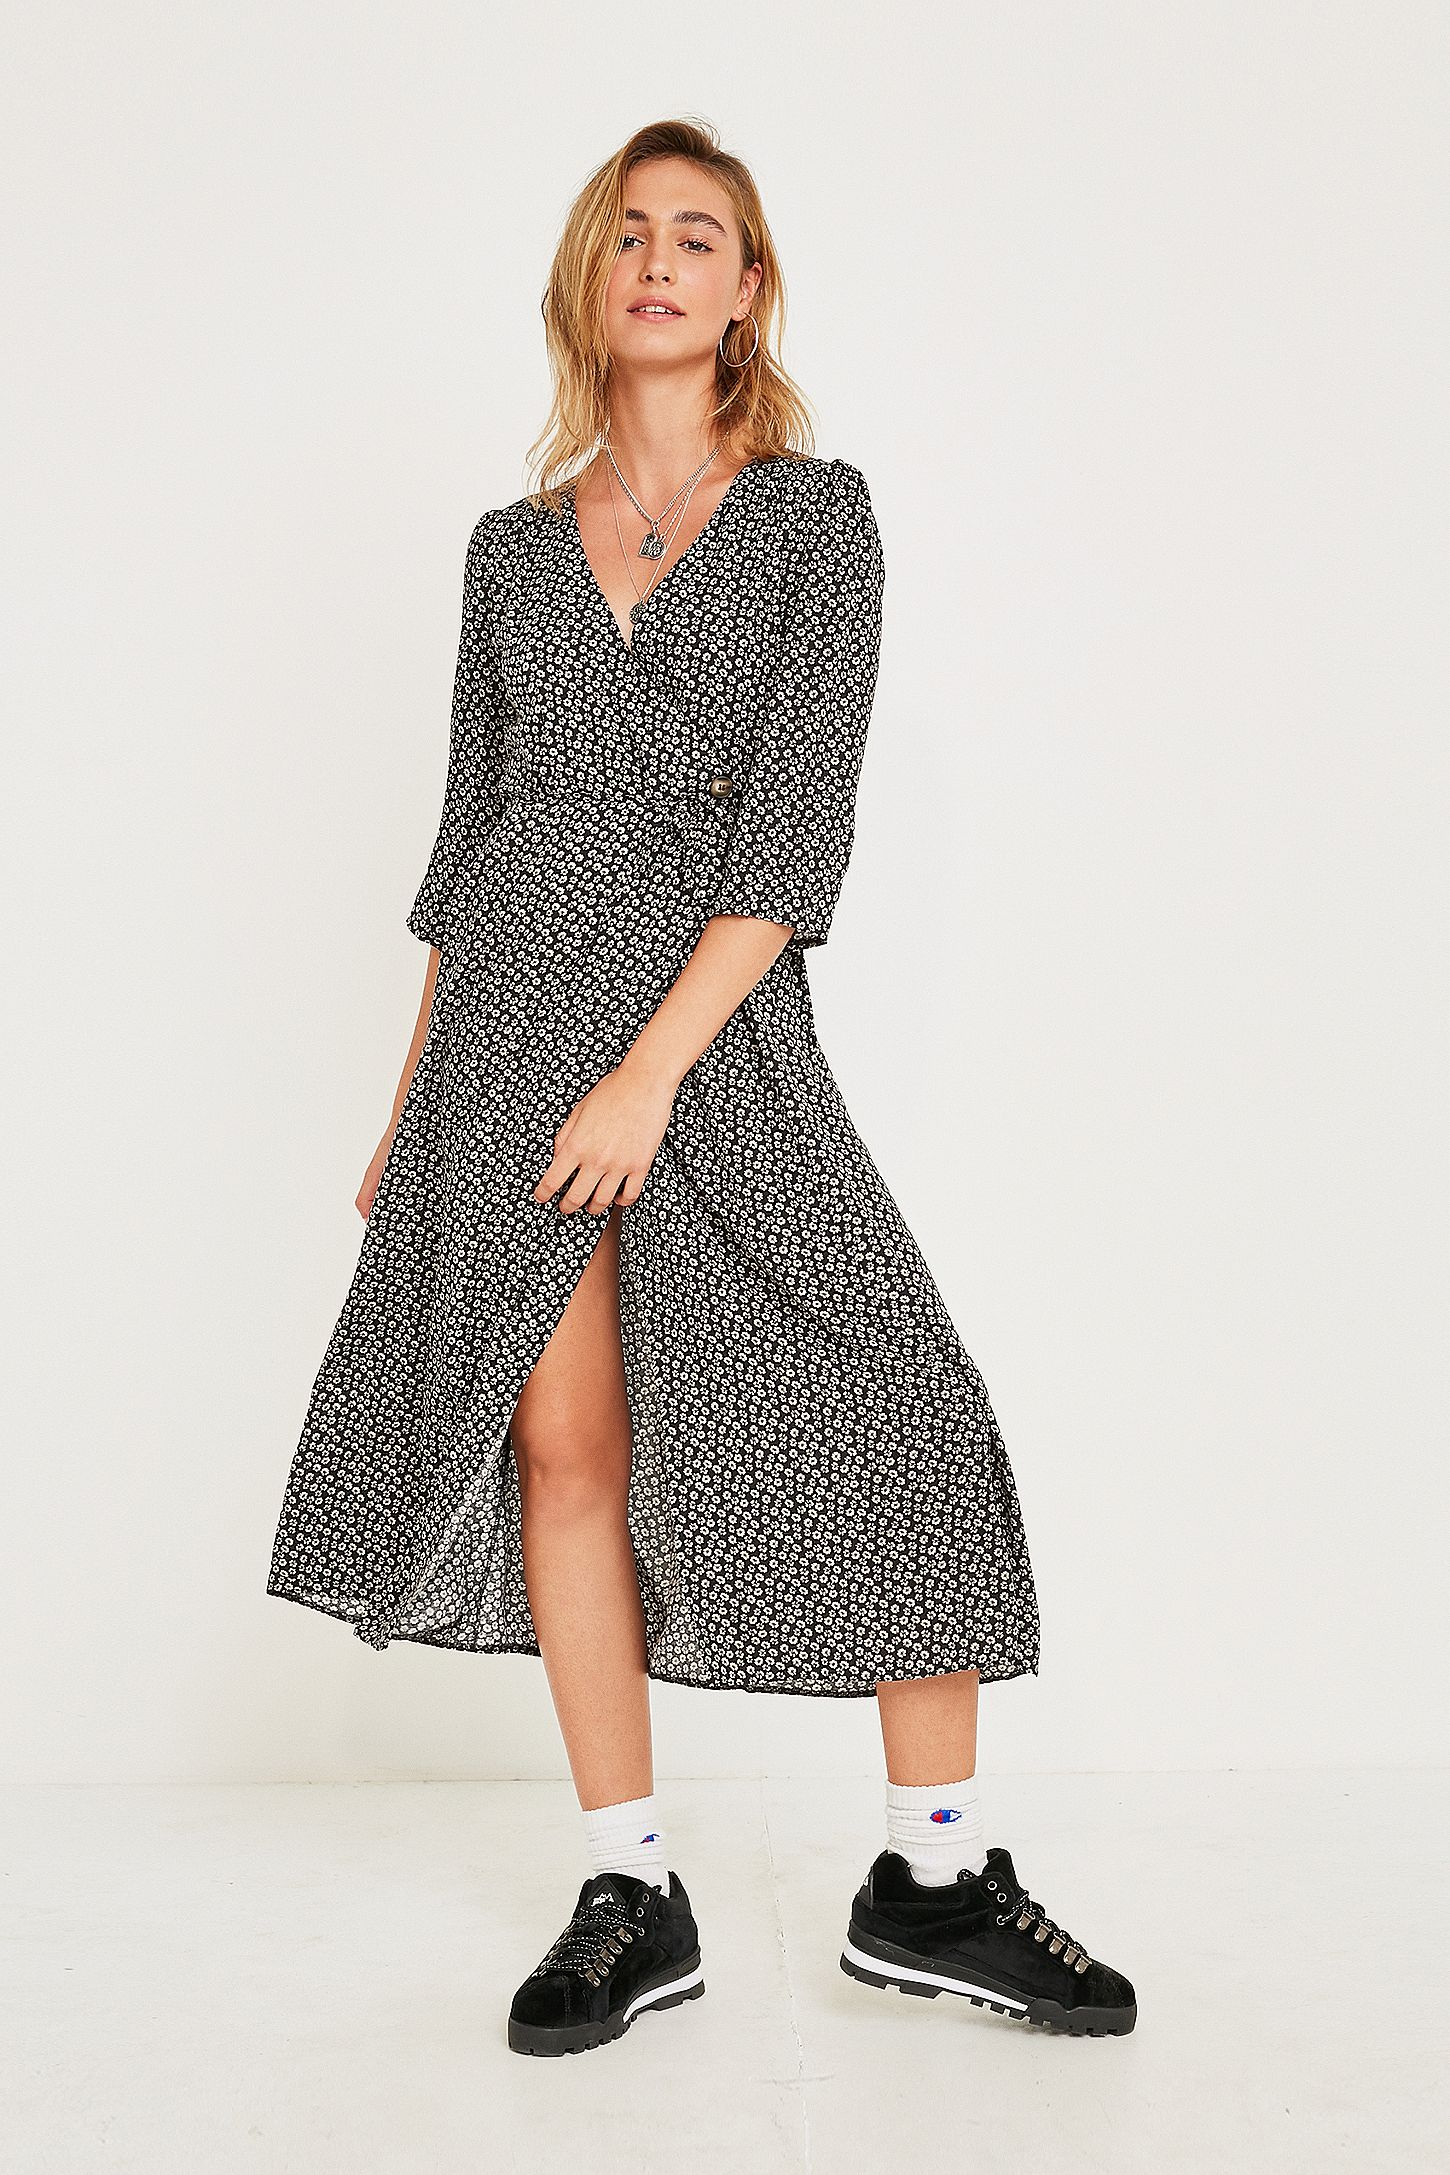 0eeb01cae351 UO Black Floral Relaxed Wrap Midi Dress | Urban Outfitters UK